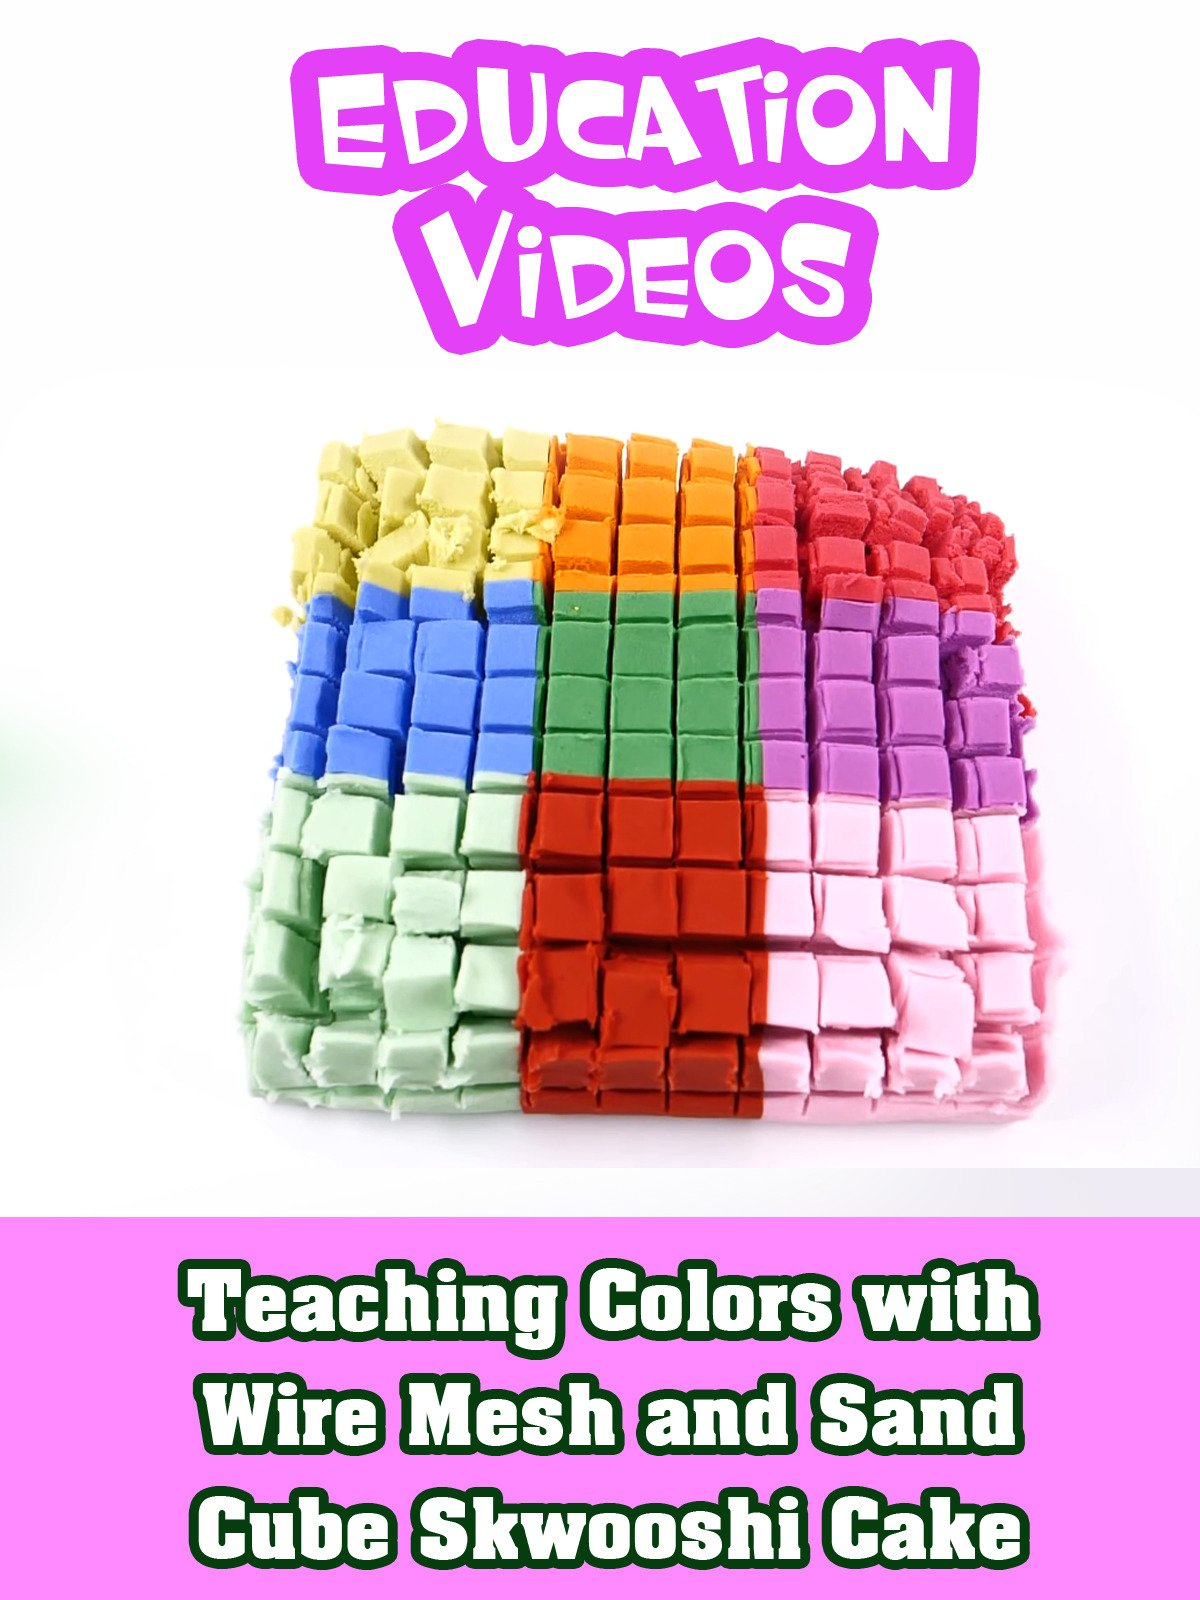 Teaching Colors with Wire Mesh and Sand Cube Skwooshi Cake